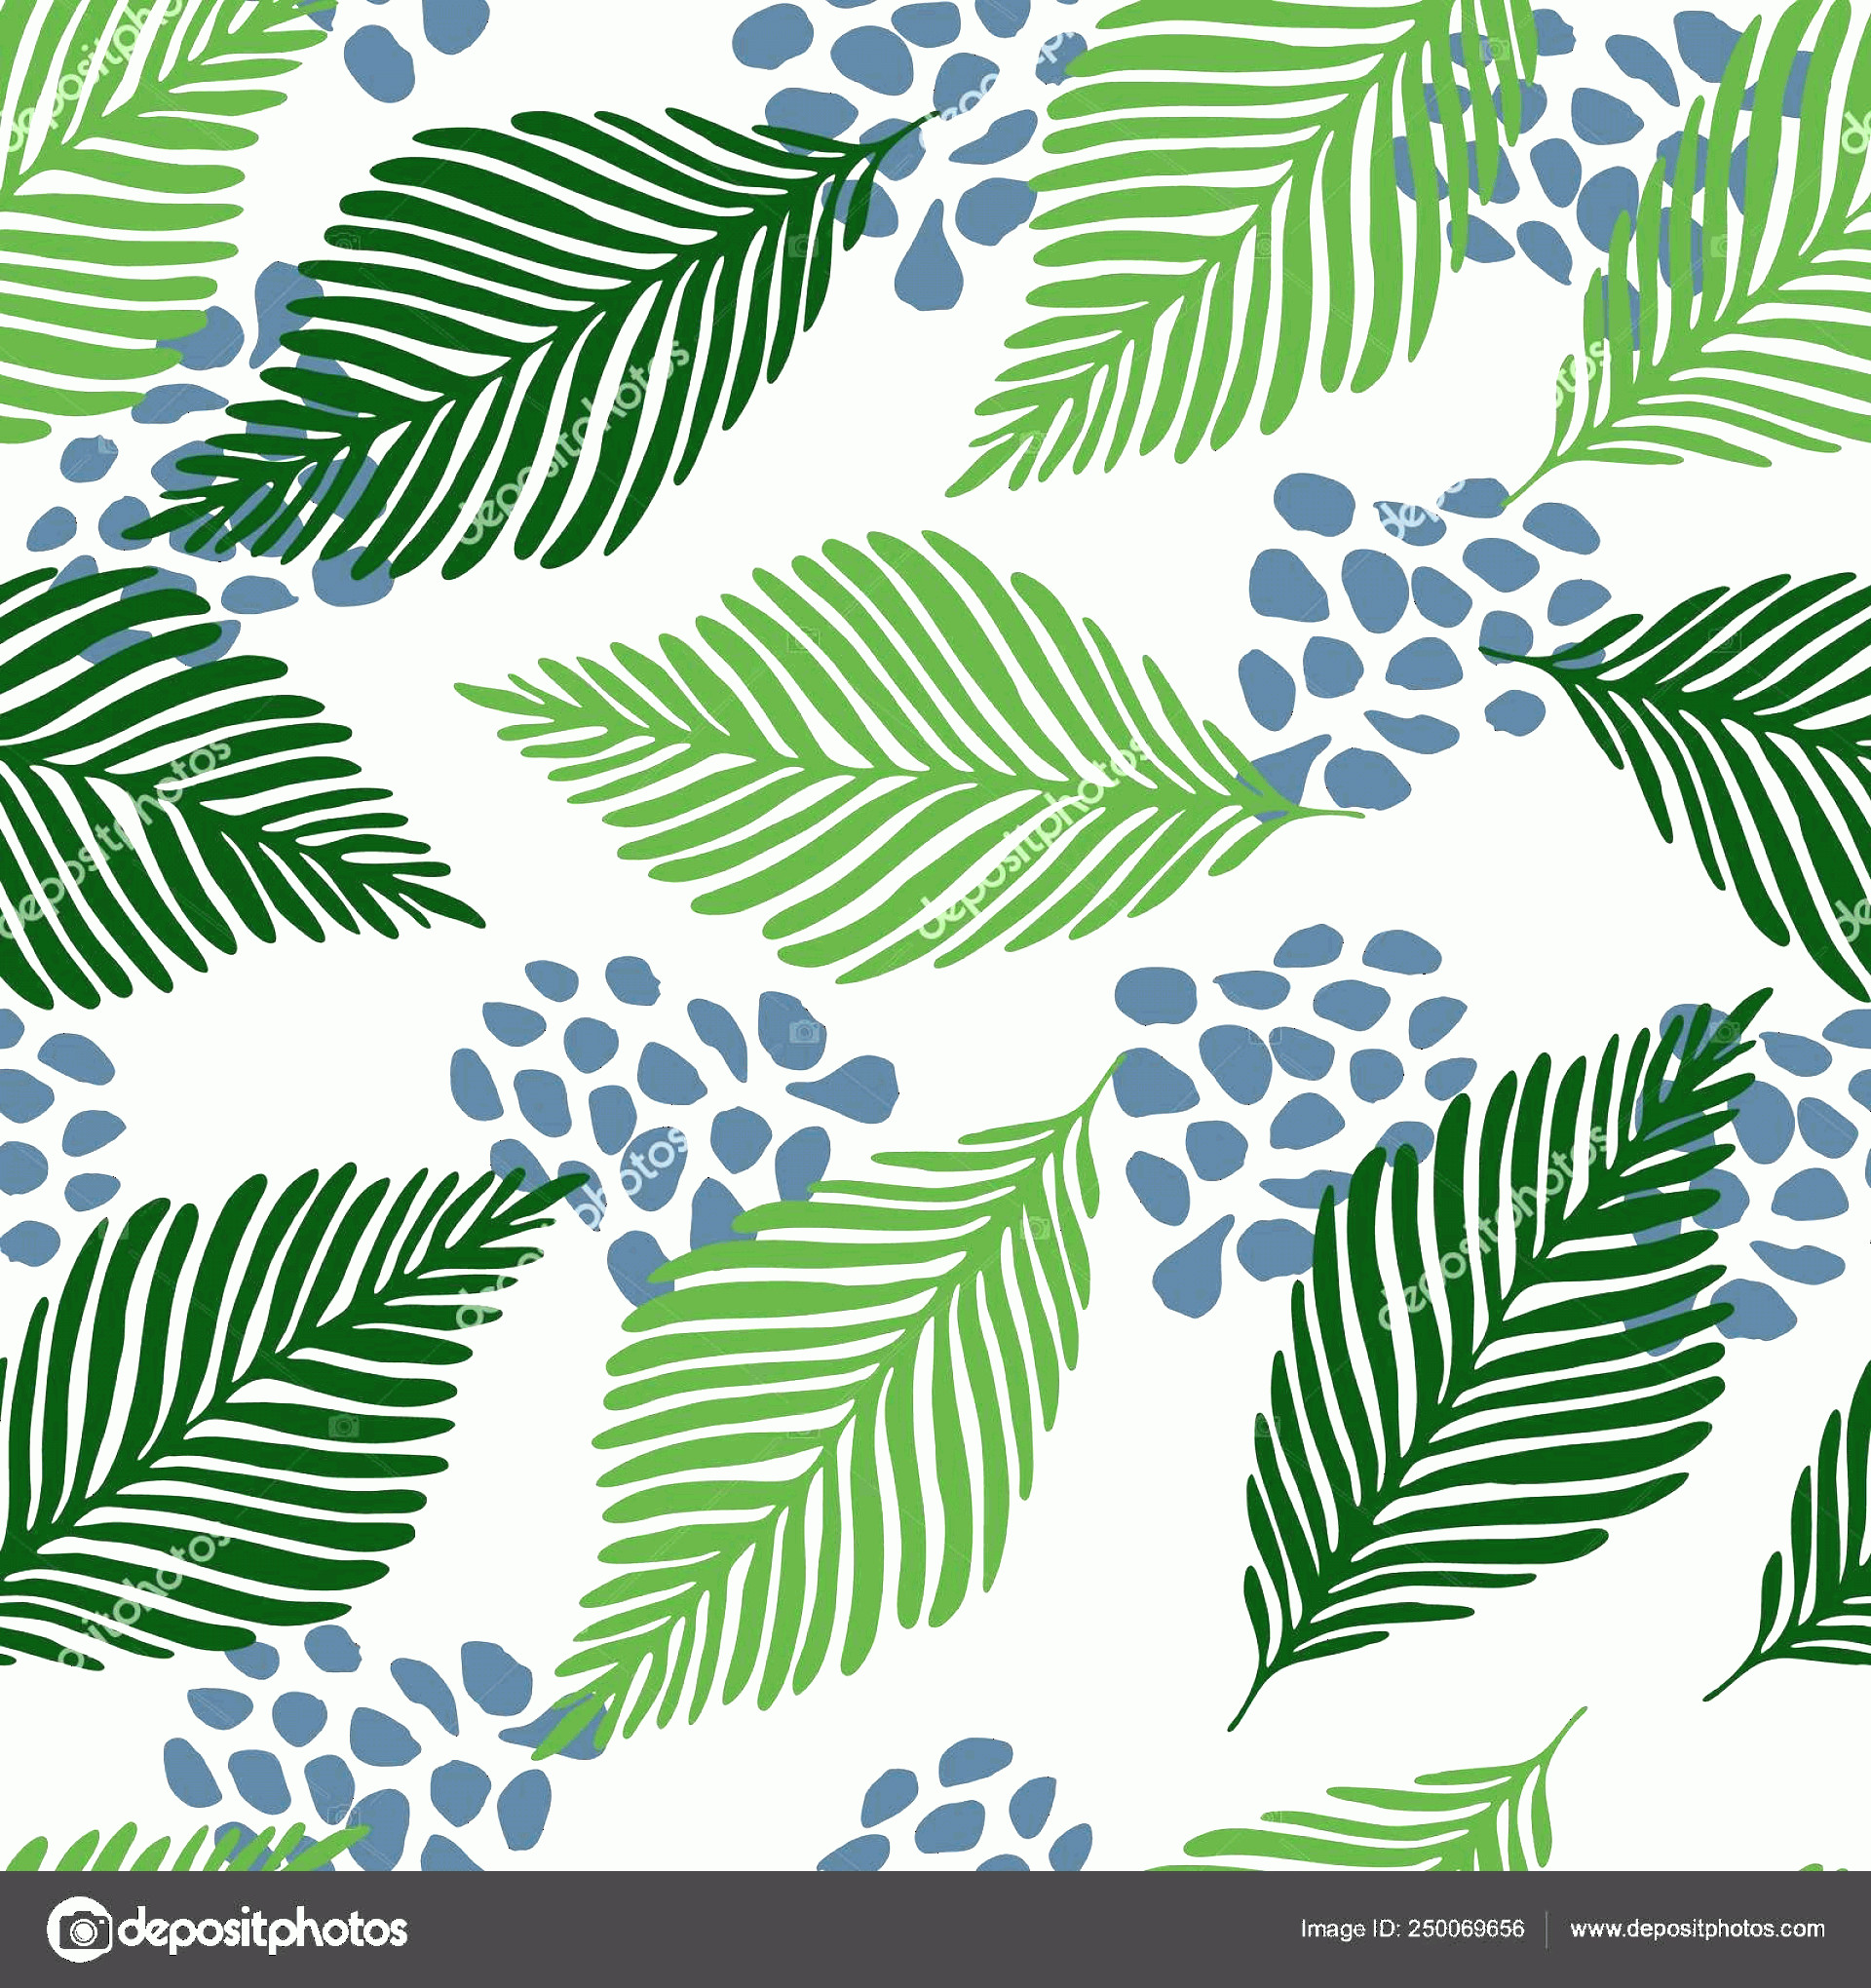 Contemporary Wallpaper Art Vector: Stock Illustration Abstract Exotic Jungle Plants Texture